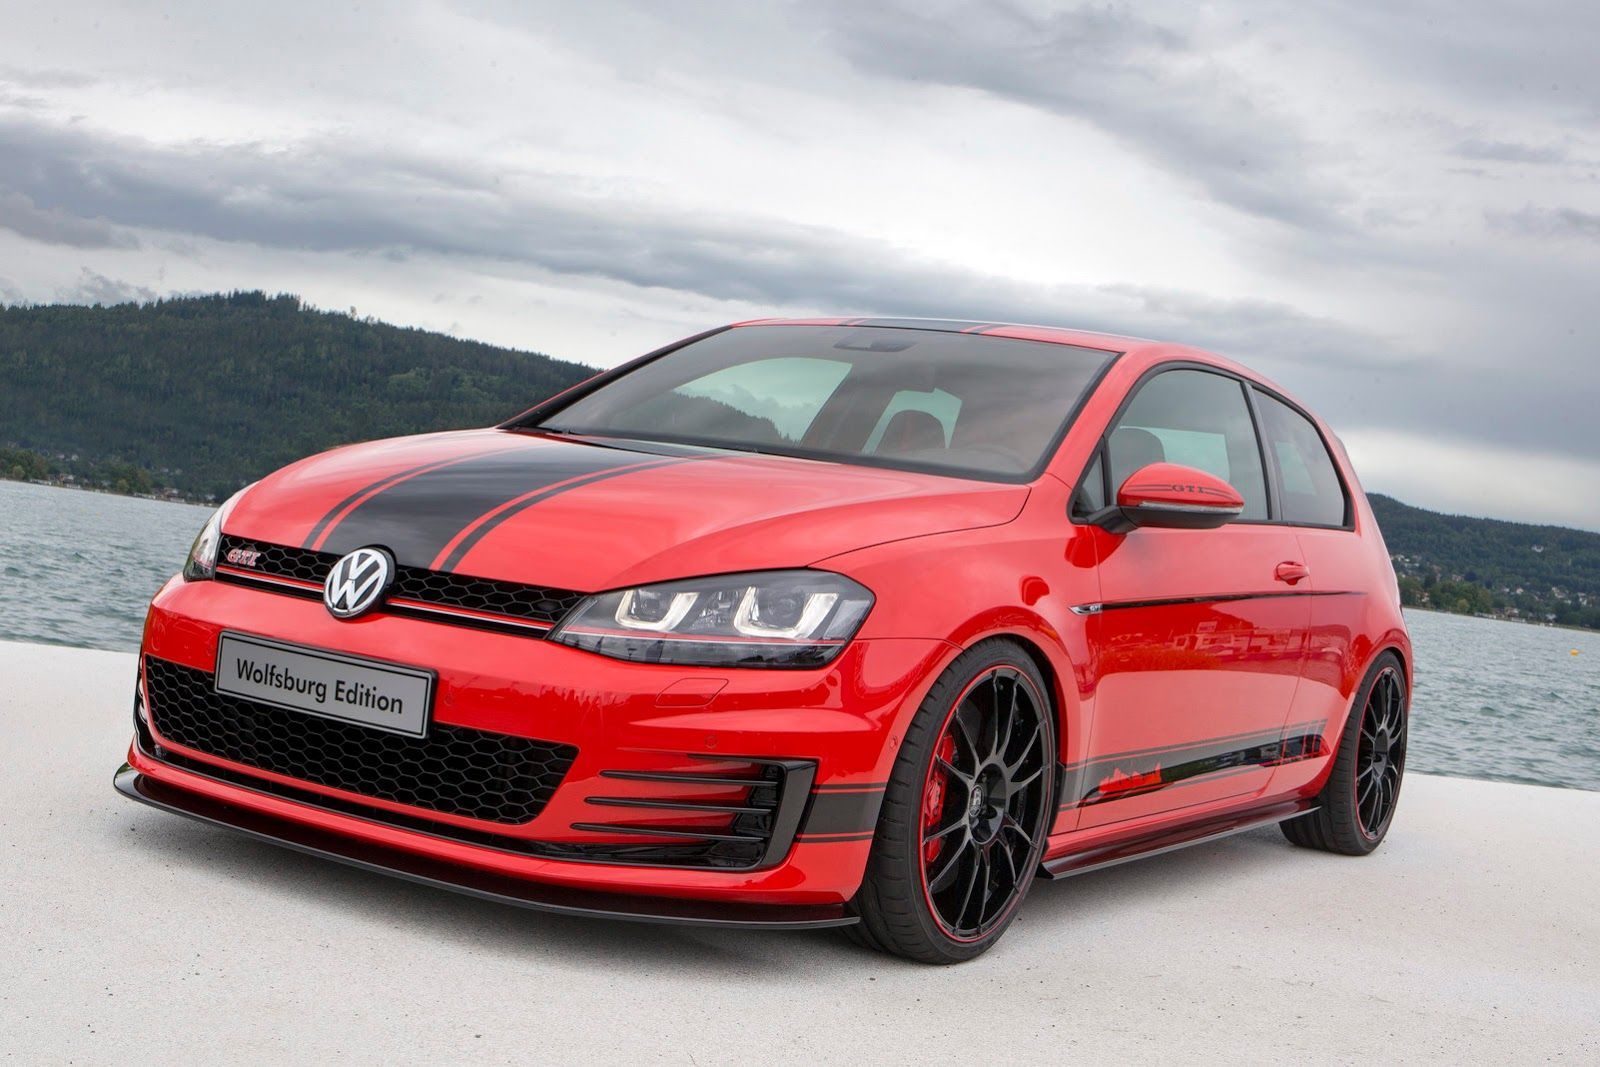 vw apprentices unwrap 380ps golf gti wolfsburg edition at w rthersee carscoops volkswagen. Black Bedroom Furniture Sets. Home Design Ideas